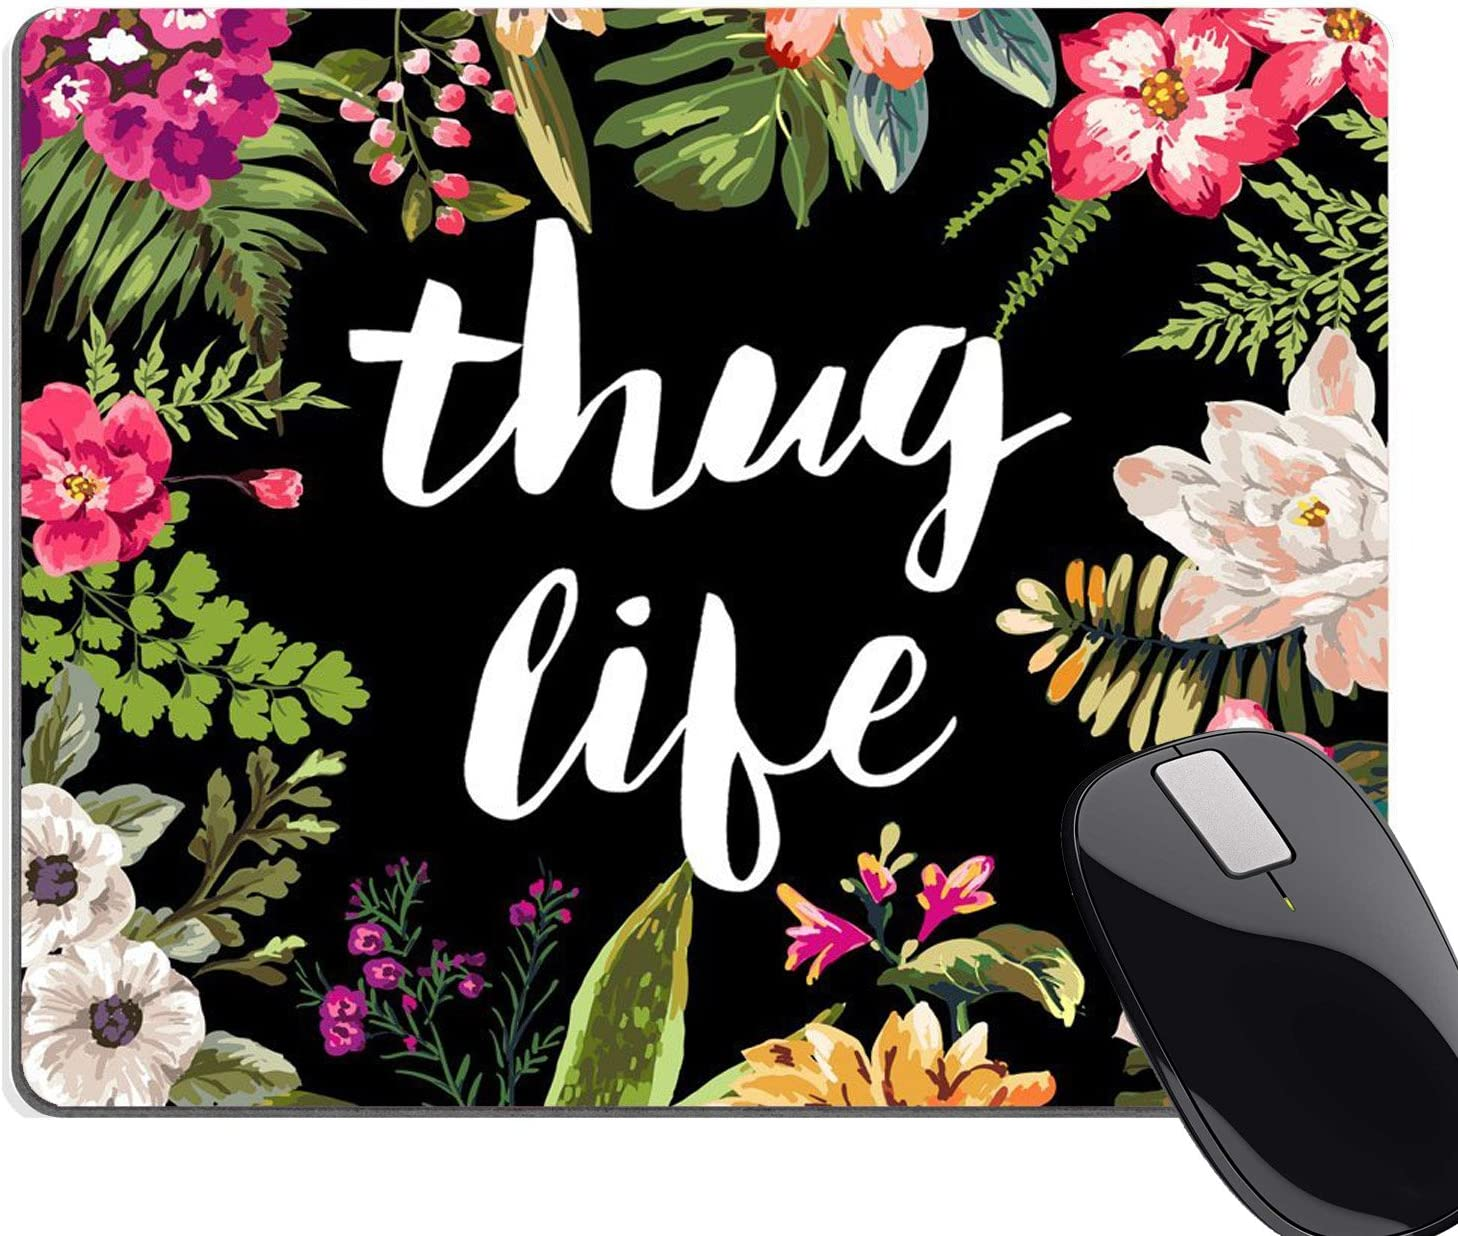 240mmX200mmX3mm Wknoon Gaming Mouse Pad Custom,Thug Life Flowers Non-Slip Thick Rubber Mouse pad,9.5 X 7.9 Inch